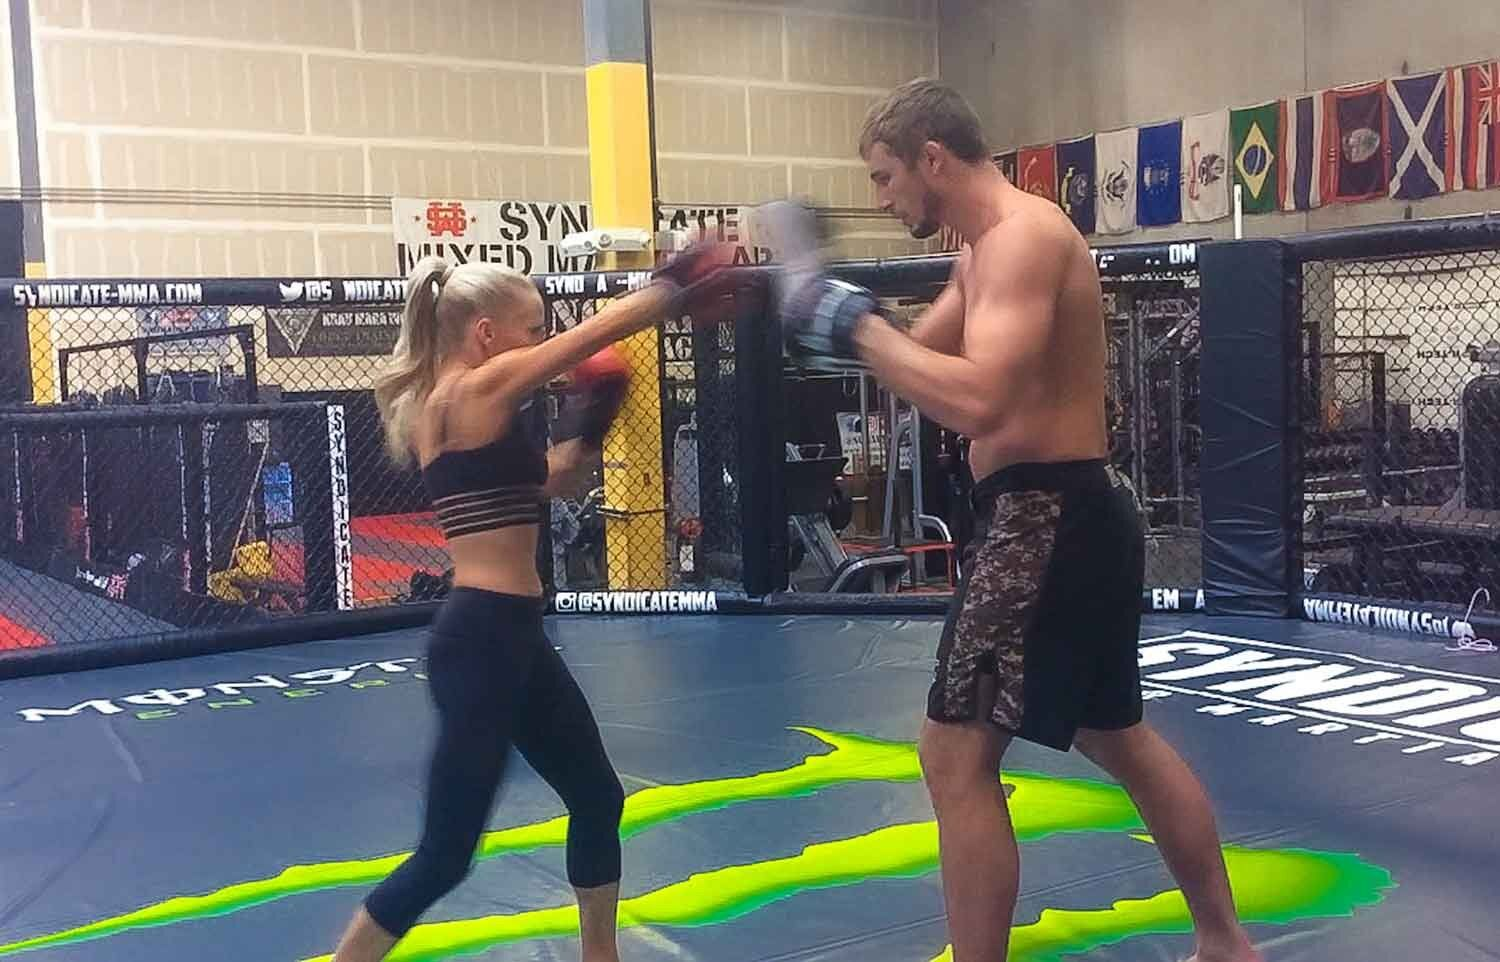 Mma Workout And Training Tips From A Pro Mma Fighter In 2020 Mma Workout Recovery Workout Post Workout Recovery